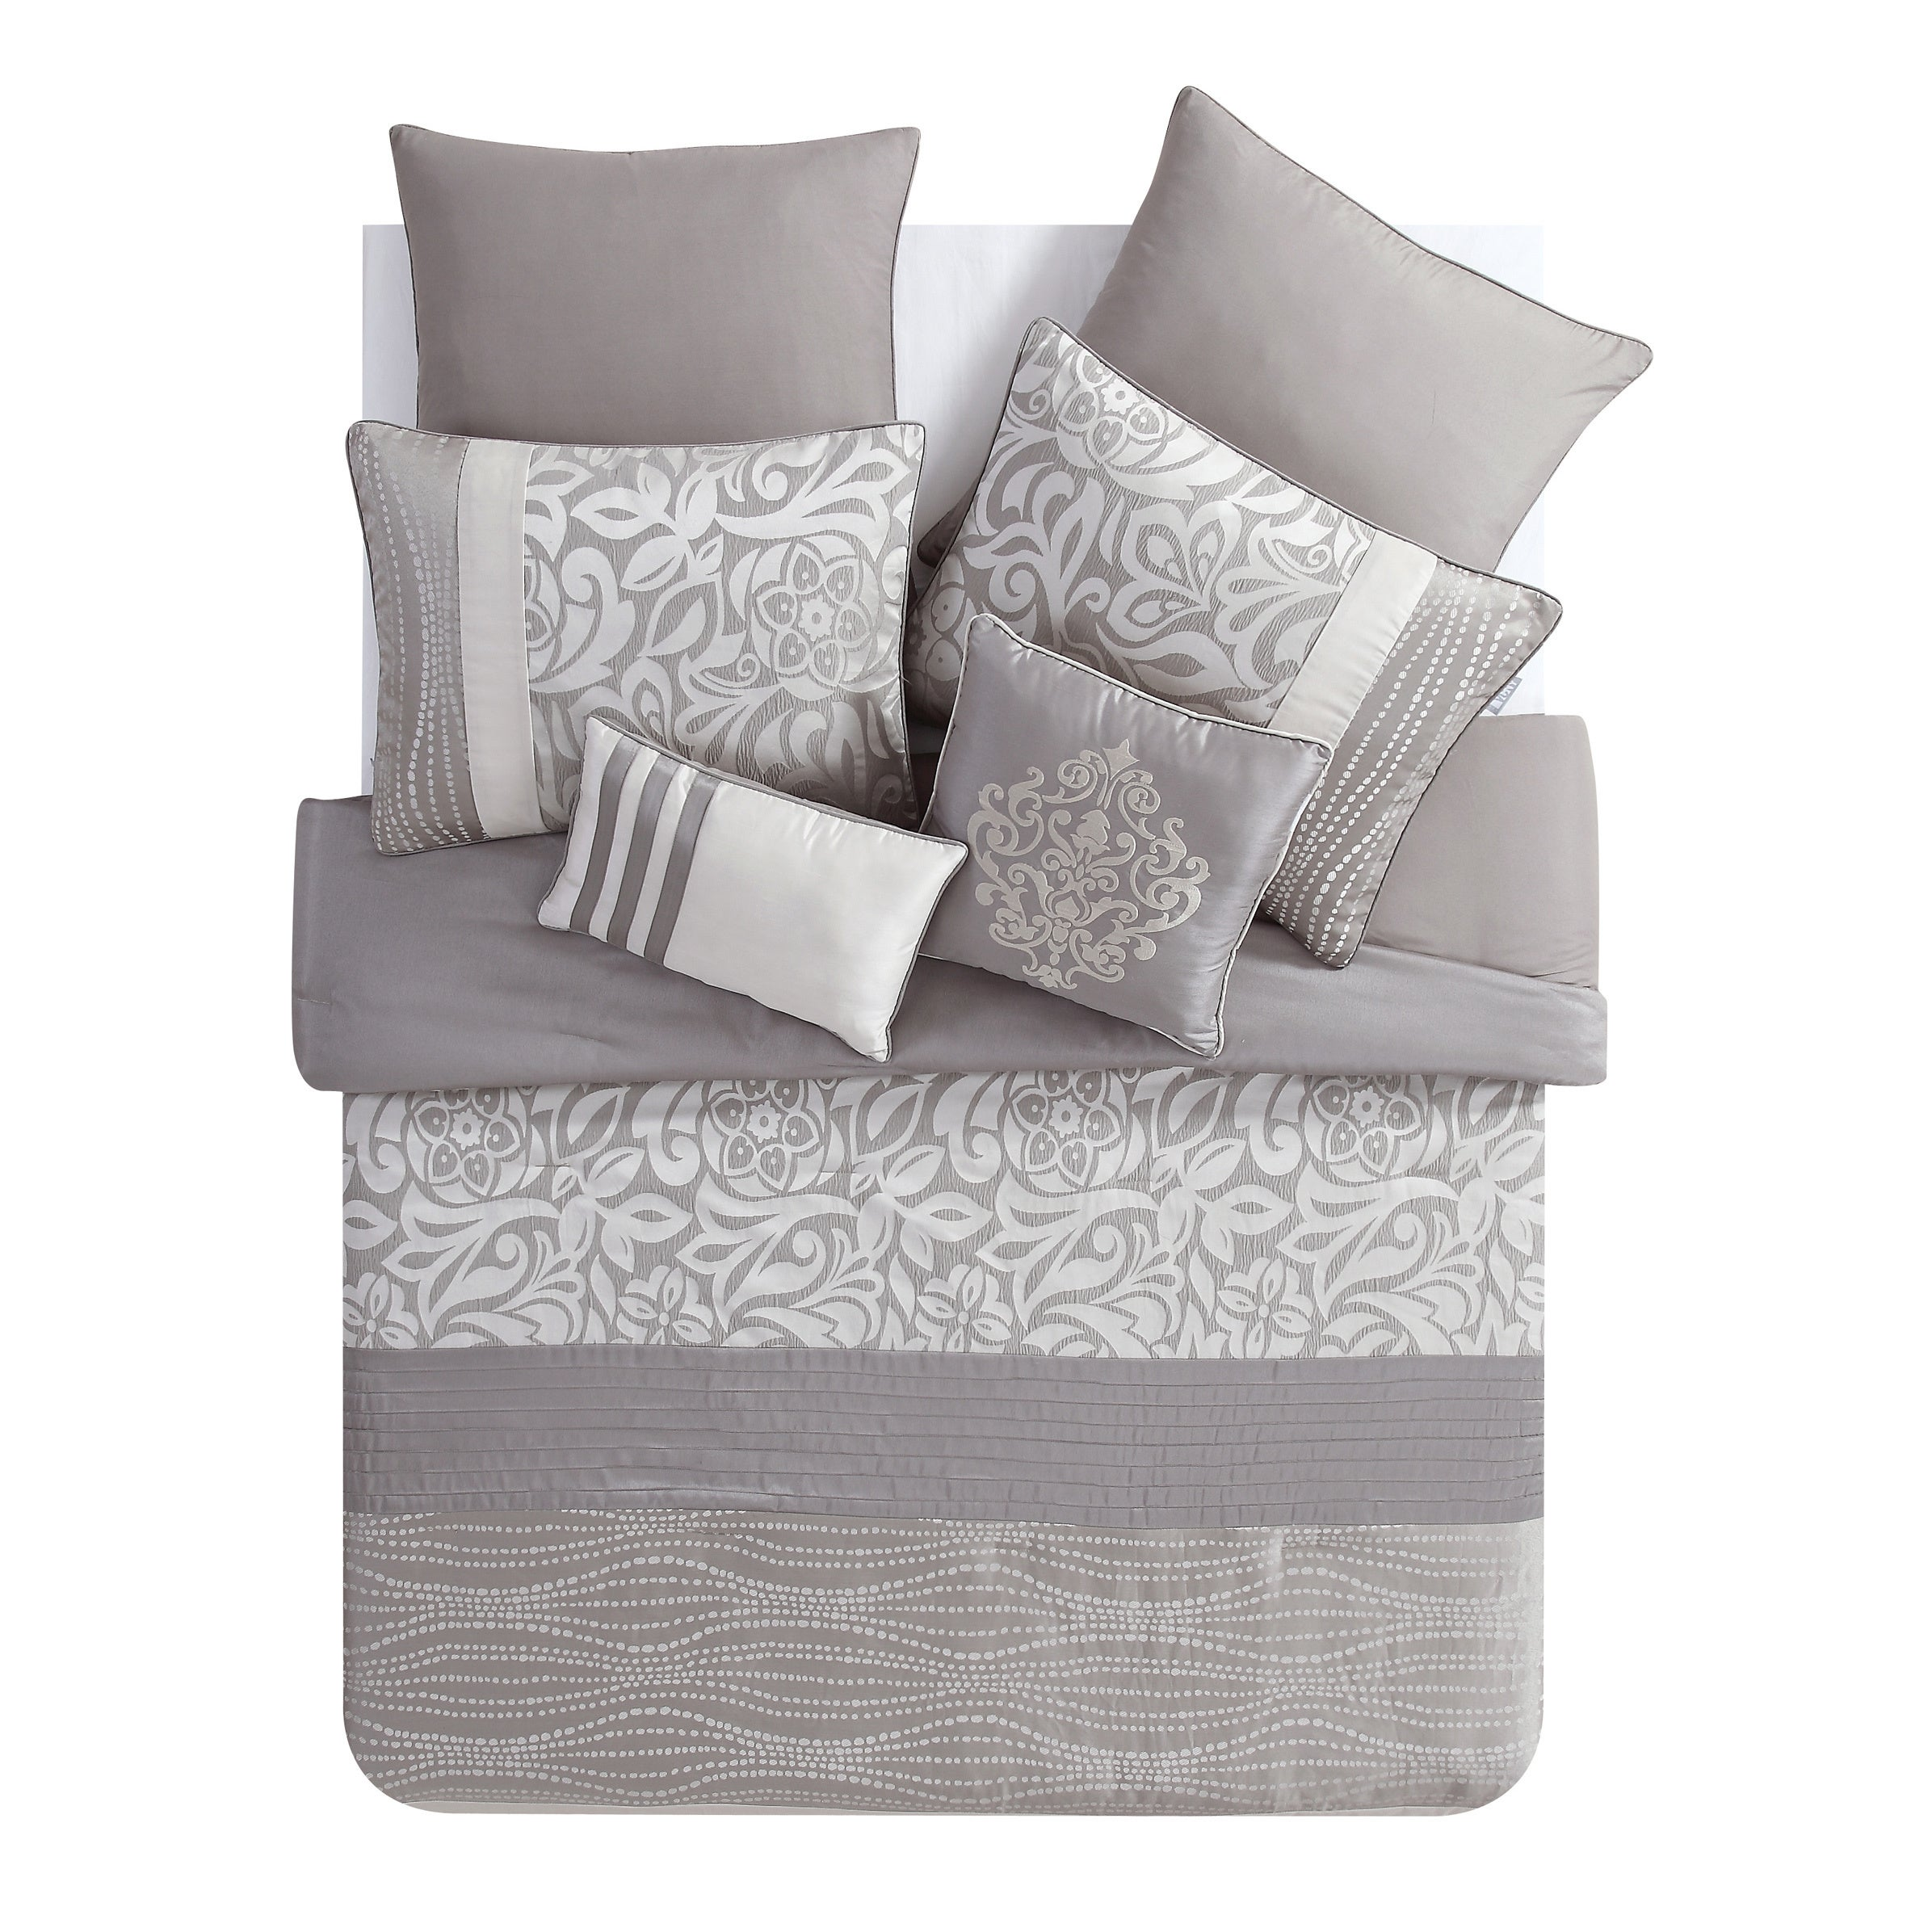 0058310bed4 Shop VCNY Arcadia Comforter Set - On Sale - Free Shipping Today - Overstock  - 9754009